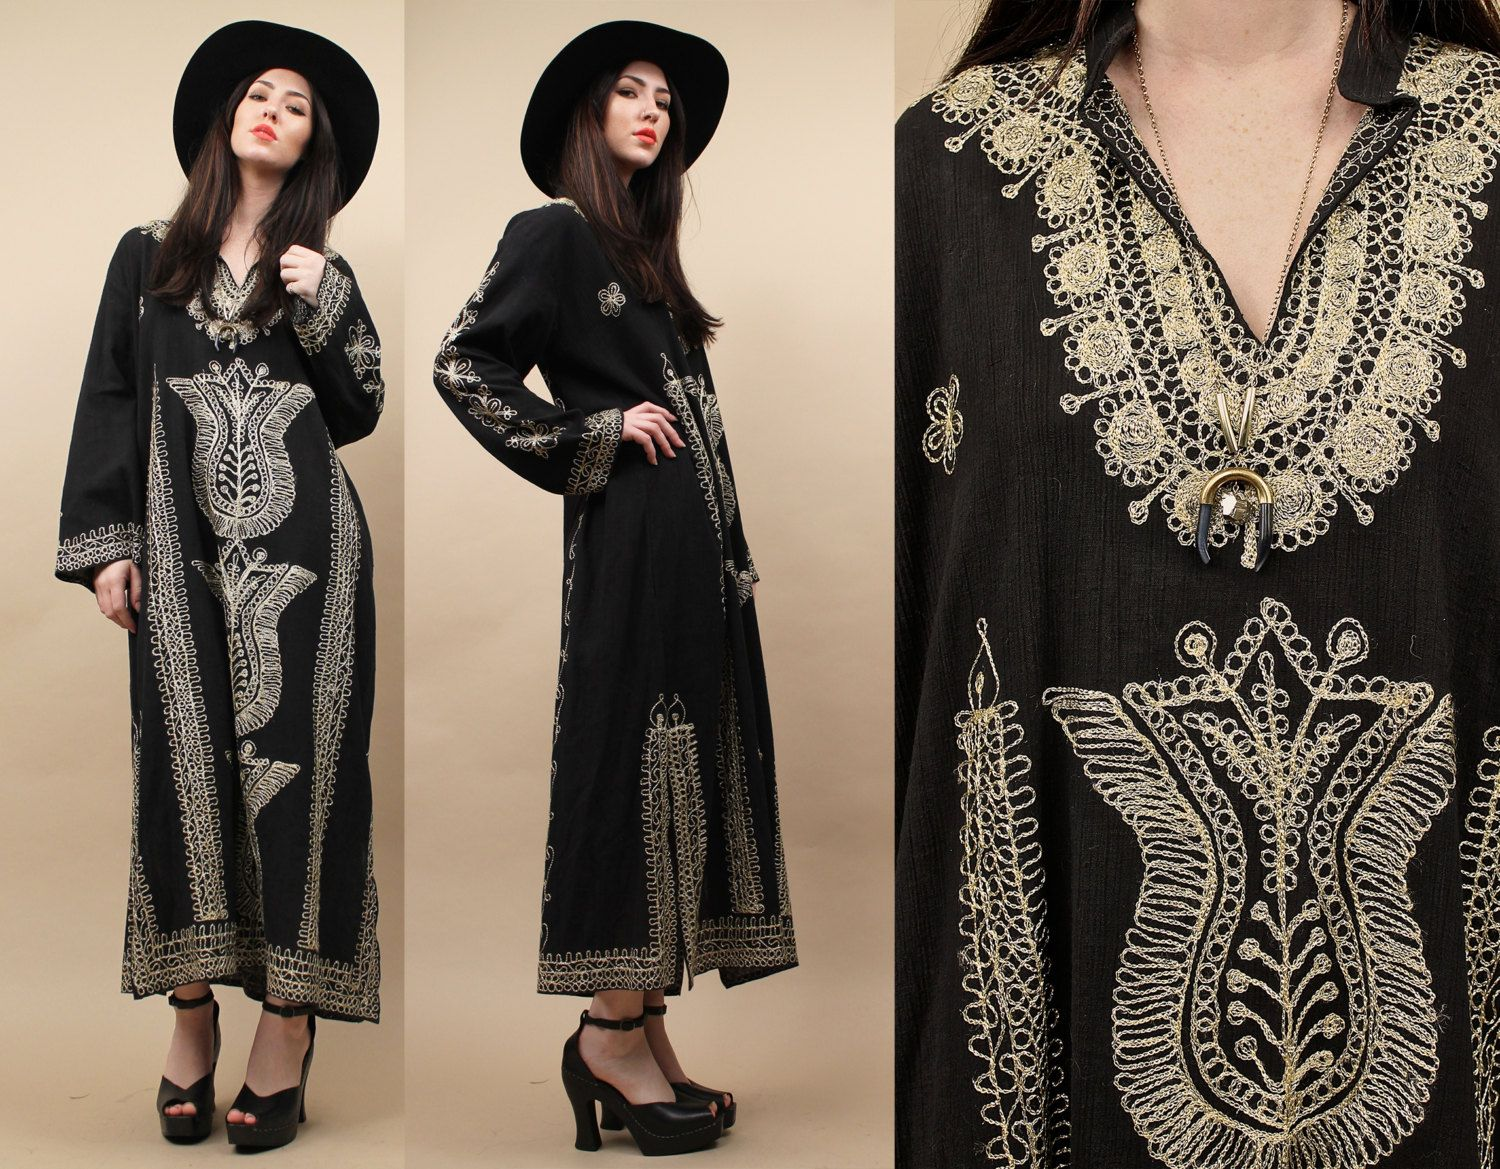 70s Vtg METALLiC Embroidered GAUZE Kaftan Maxi Dress / ETHNiC Intricate Design / Boho Festival Cotton Summer Hostess  / One Size by nanometer on Etsy https://www.etsy.com/listing/226591469/70s-vtg-metallic-embroidered-gauze